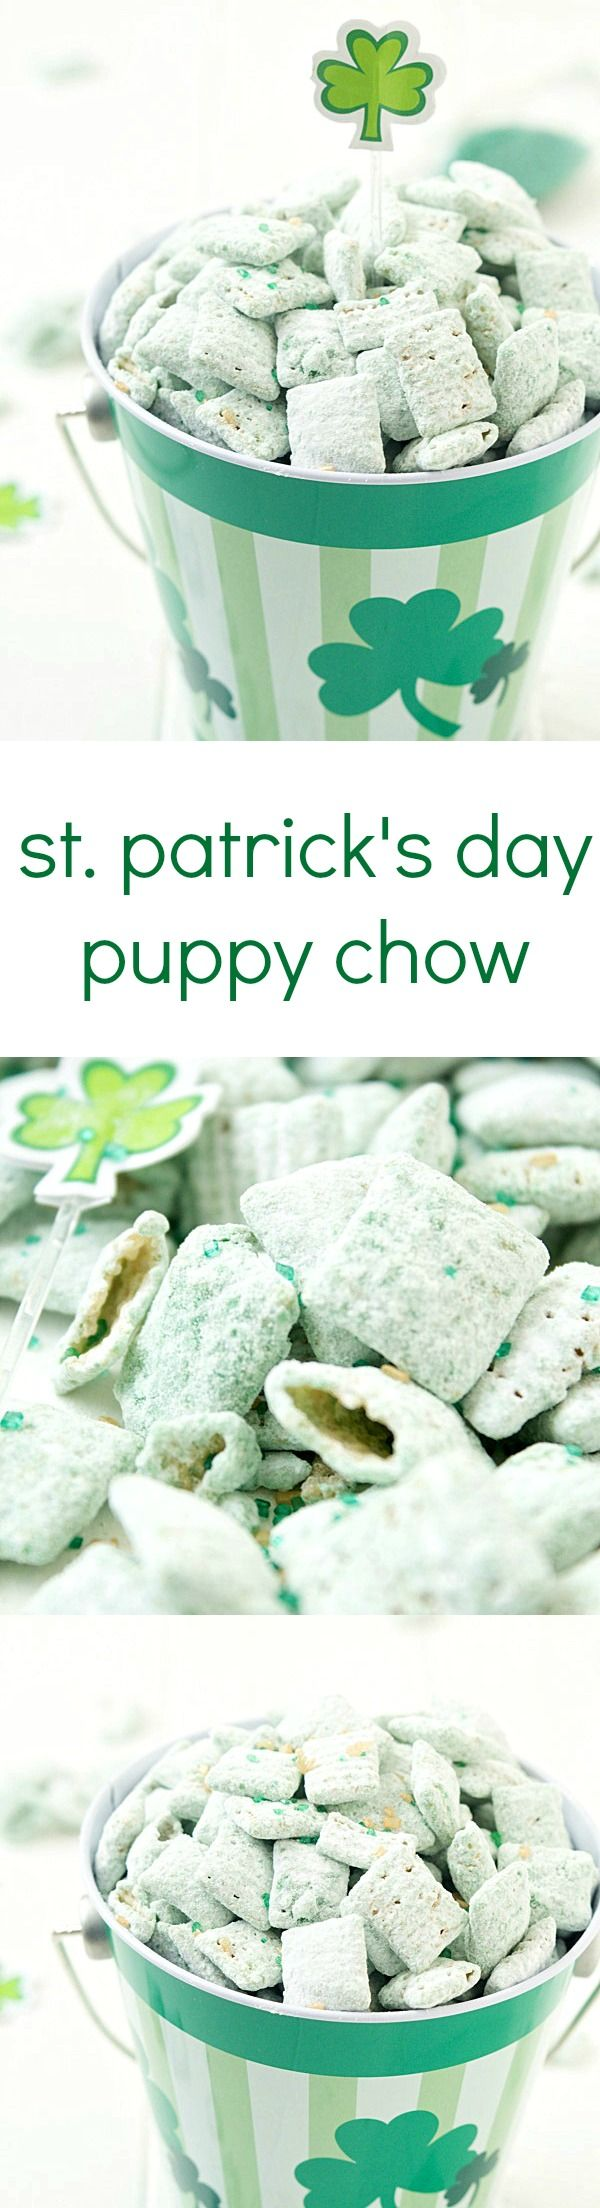 St. Patrick's Day Puppy Chow Recipe - The perfect green and minty snack! Beware, it's highly addictive and you will not be able to stop!